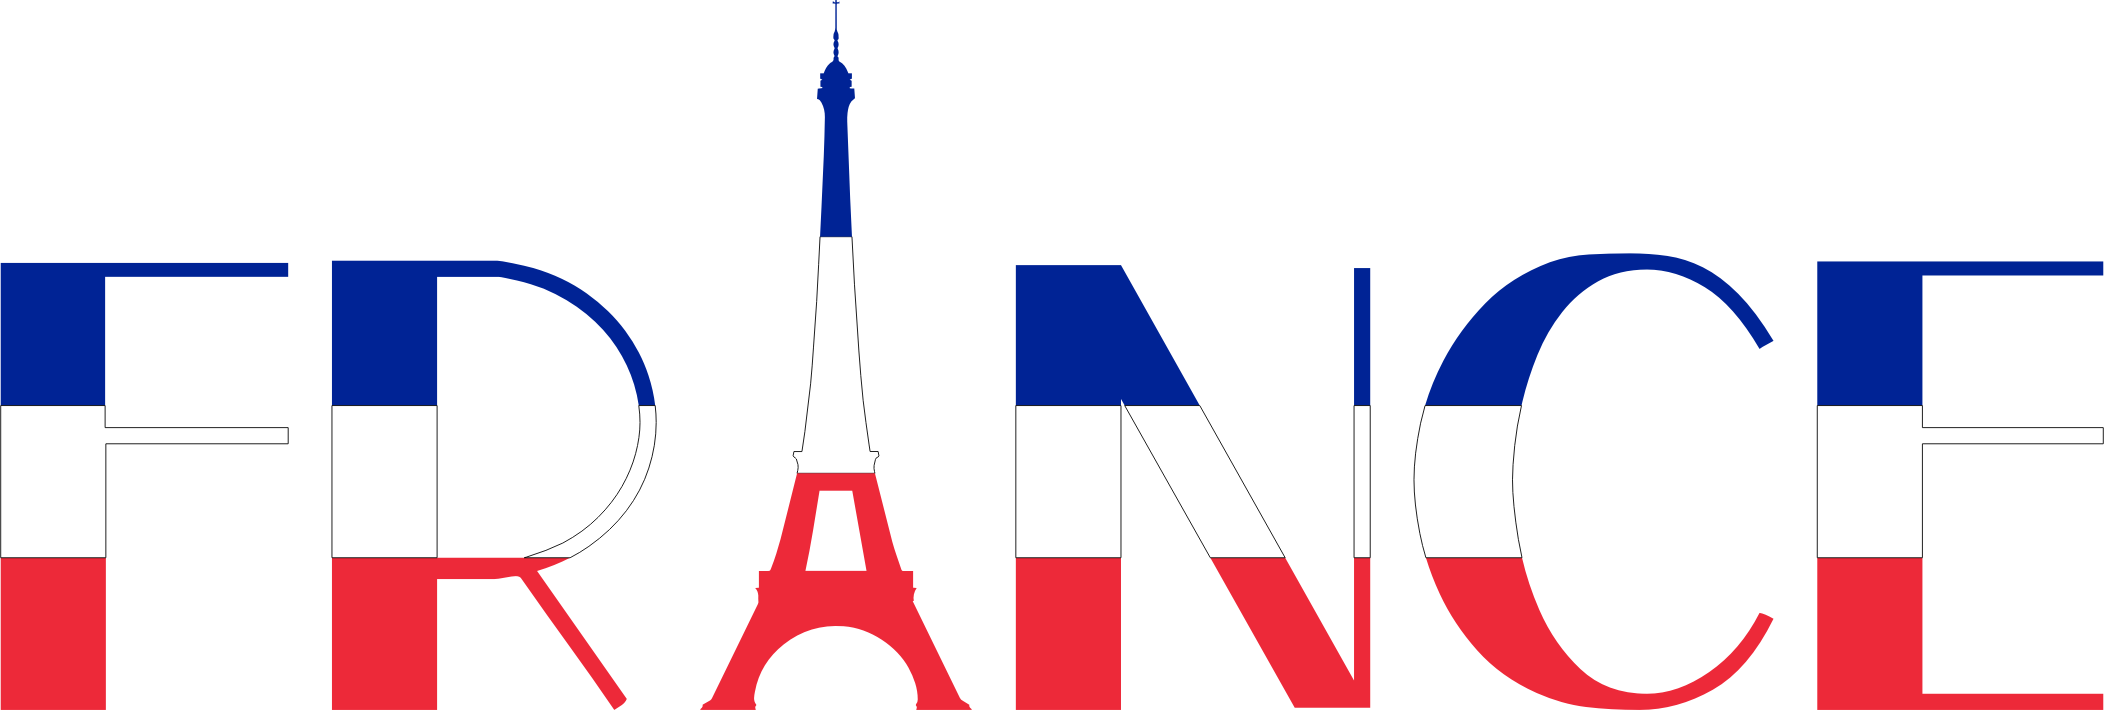 France big image png. French clipart typography